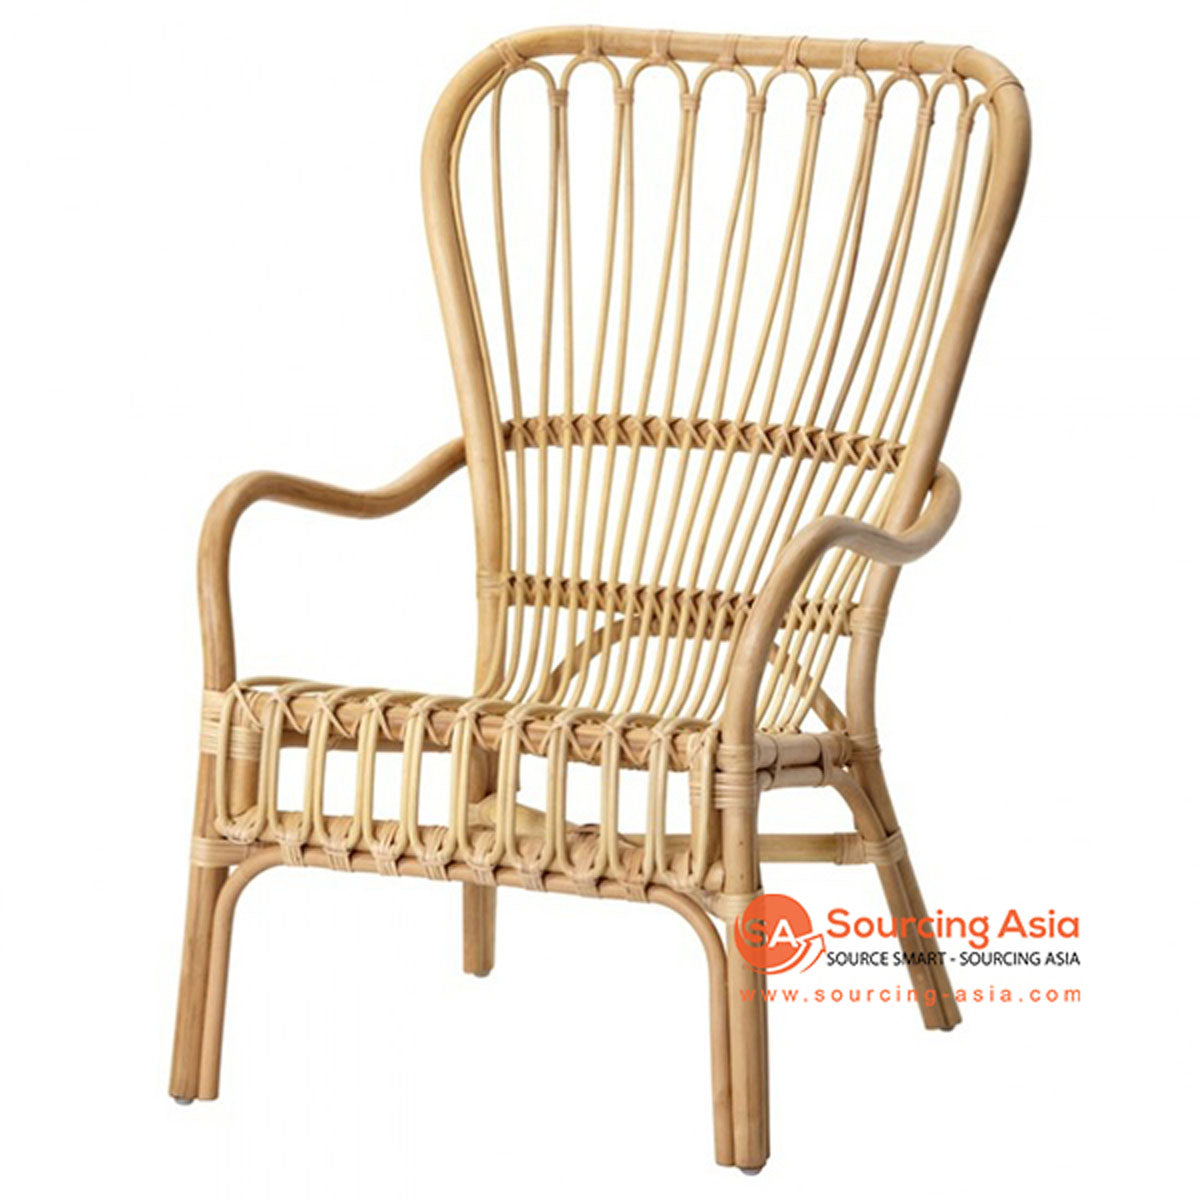 SHL097 - NATURAL UPHOLSTERED DESIGN ARMCHAIR